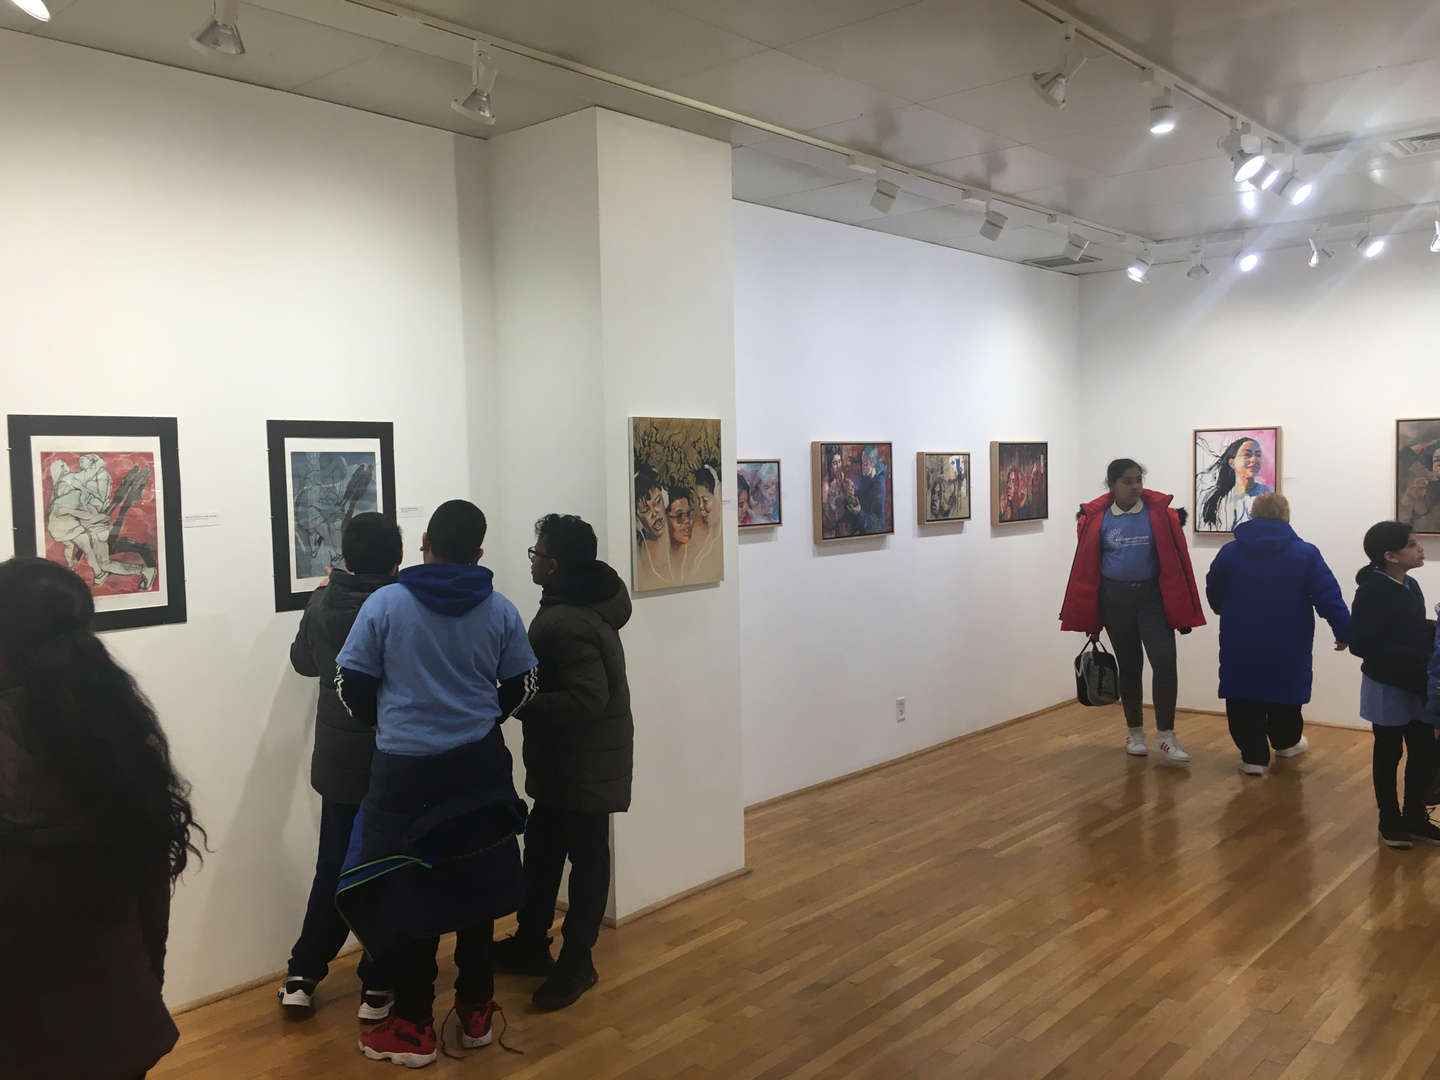 Students admire artwork on the walls of an exhibit